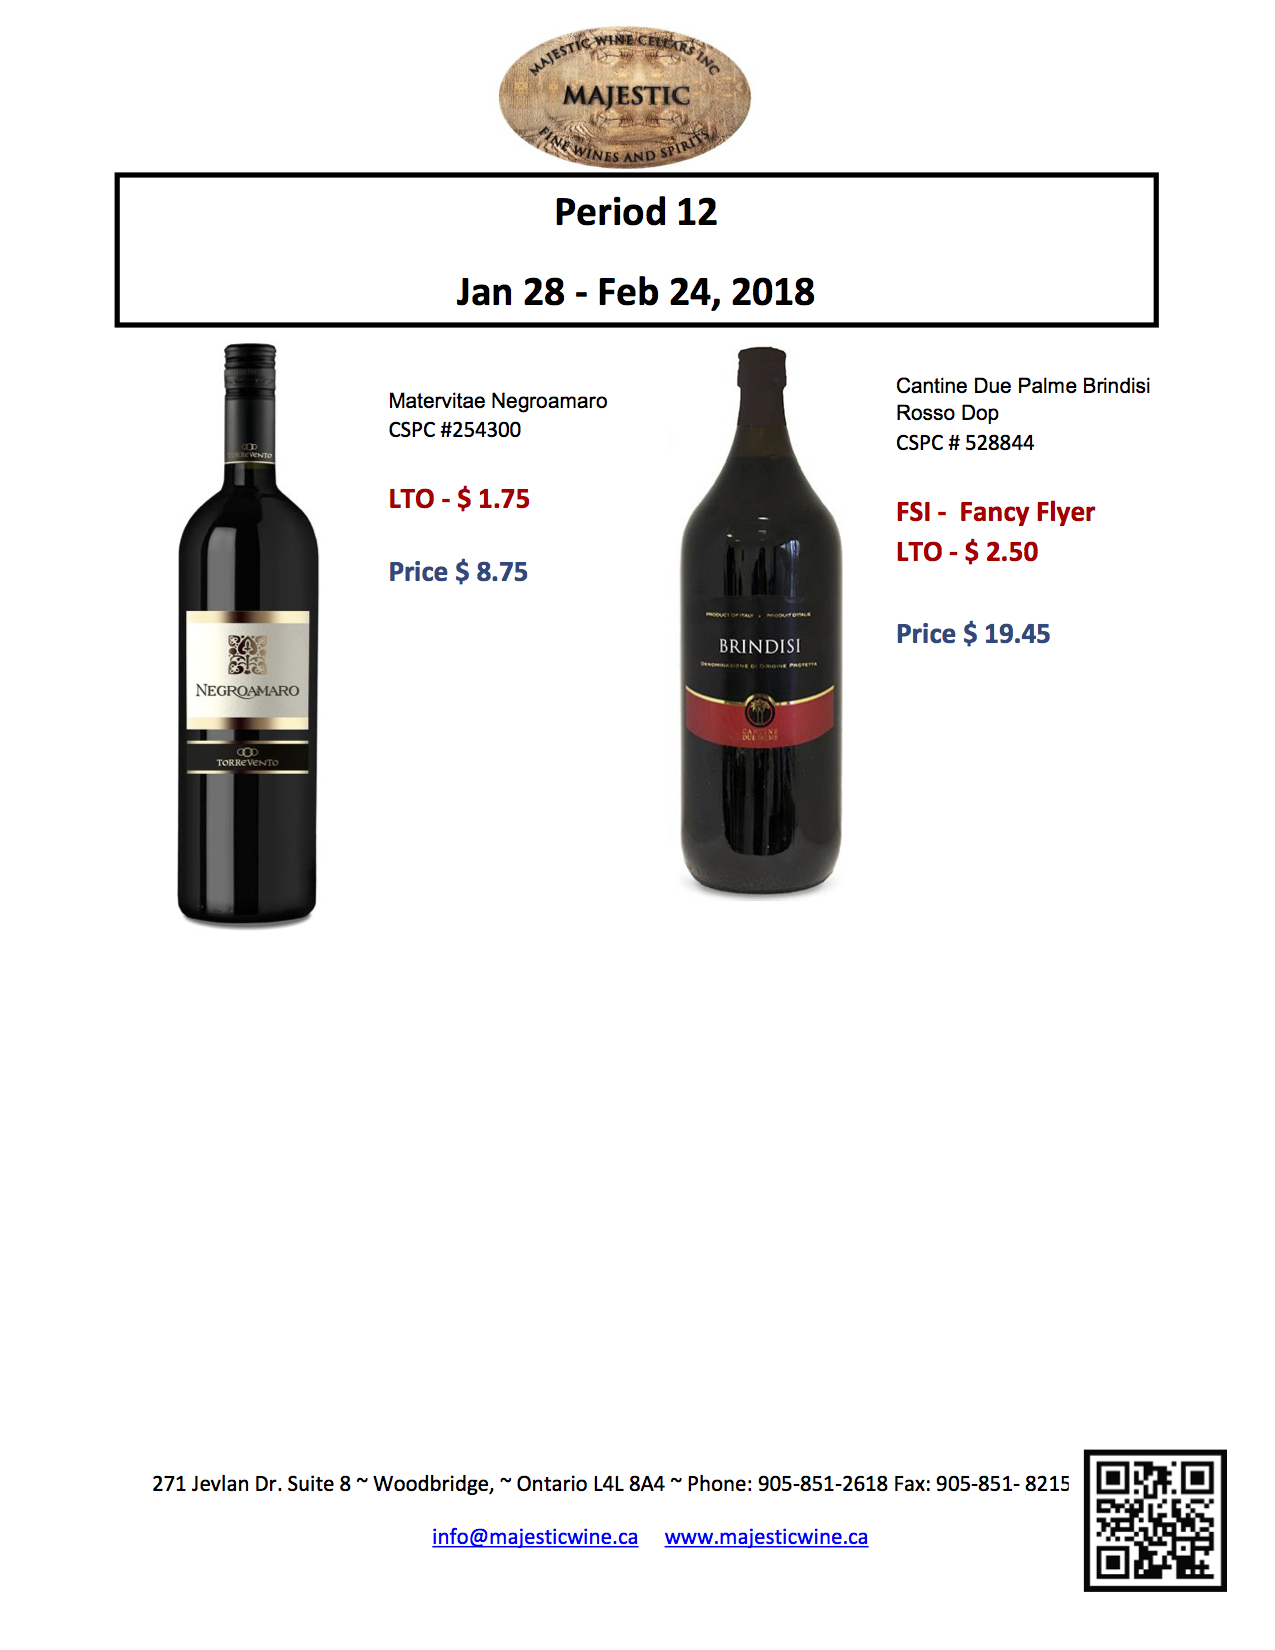 Period 12: January 28th - February 24th, 2018 Promotion